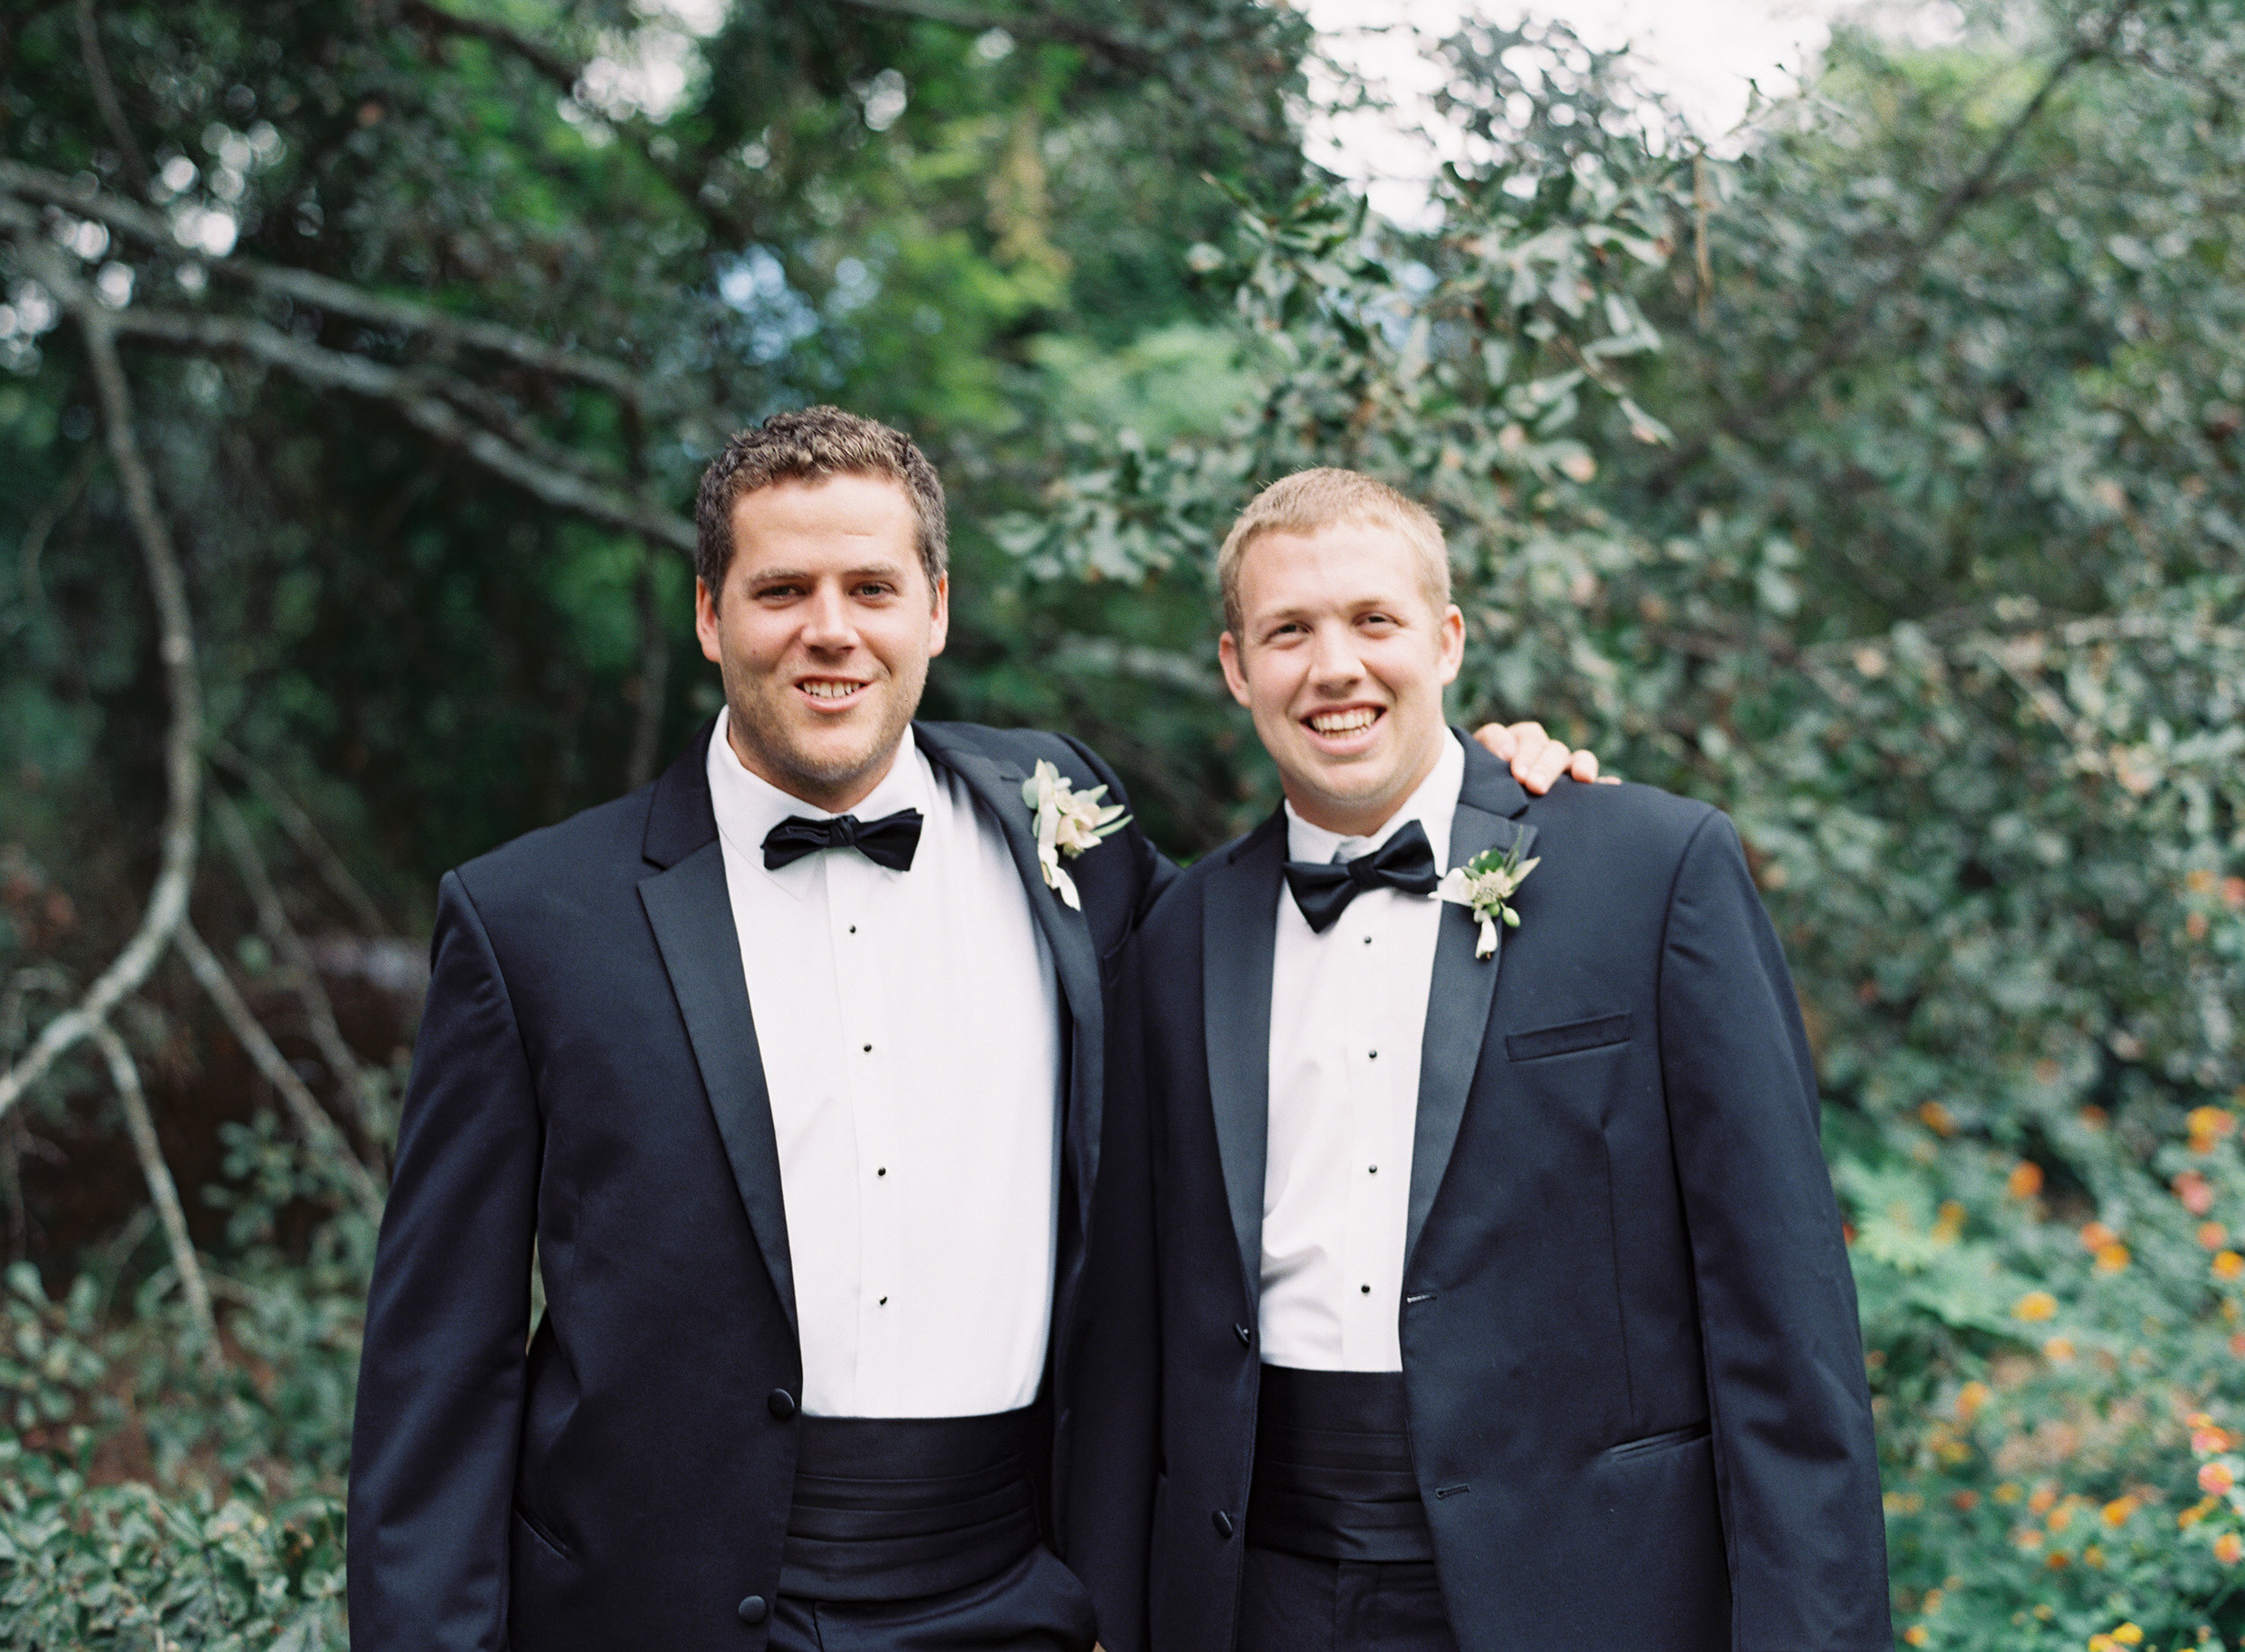 Zack and Andrew (Best Man) at Zack's wedding in September of 2015